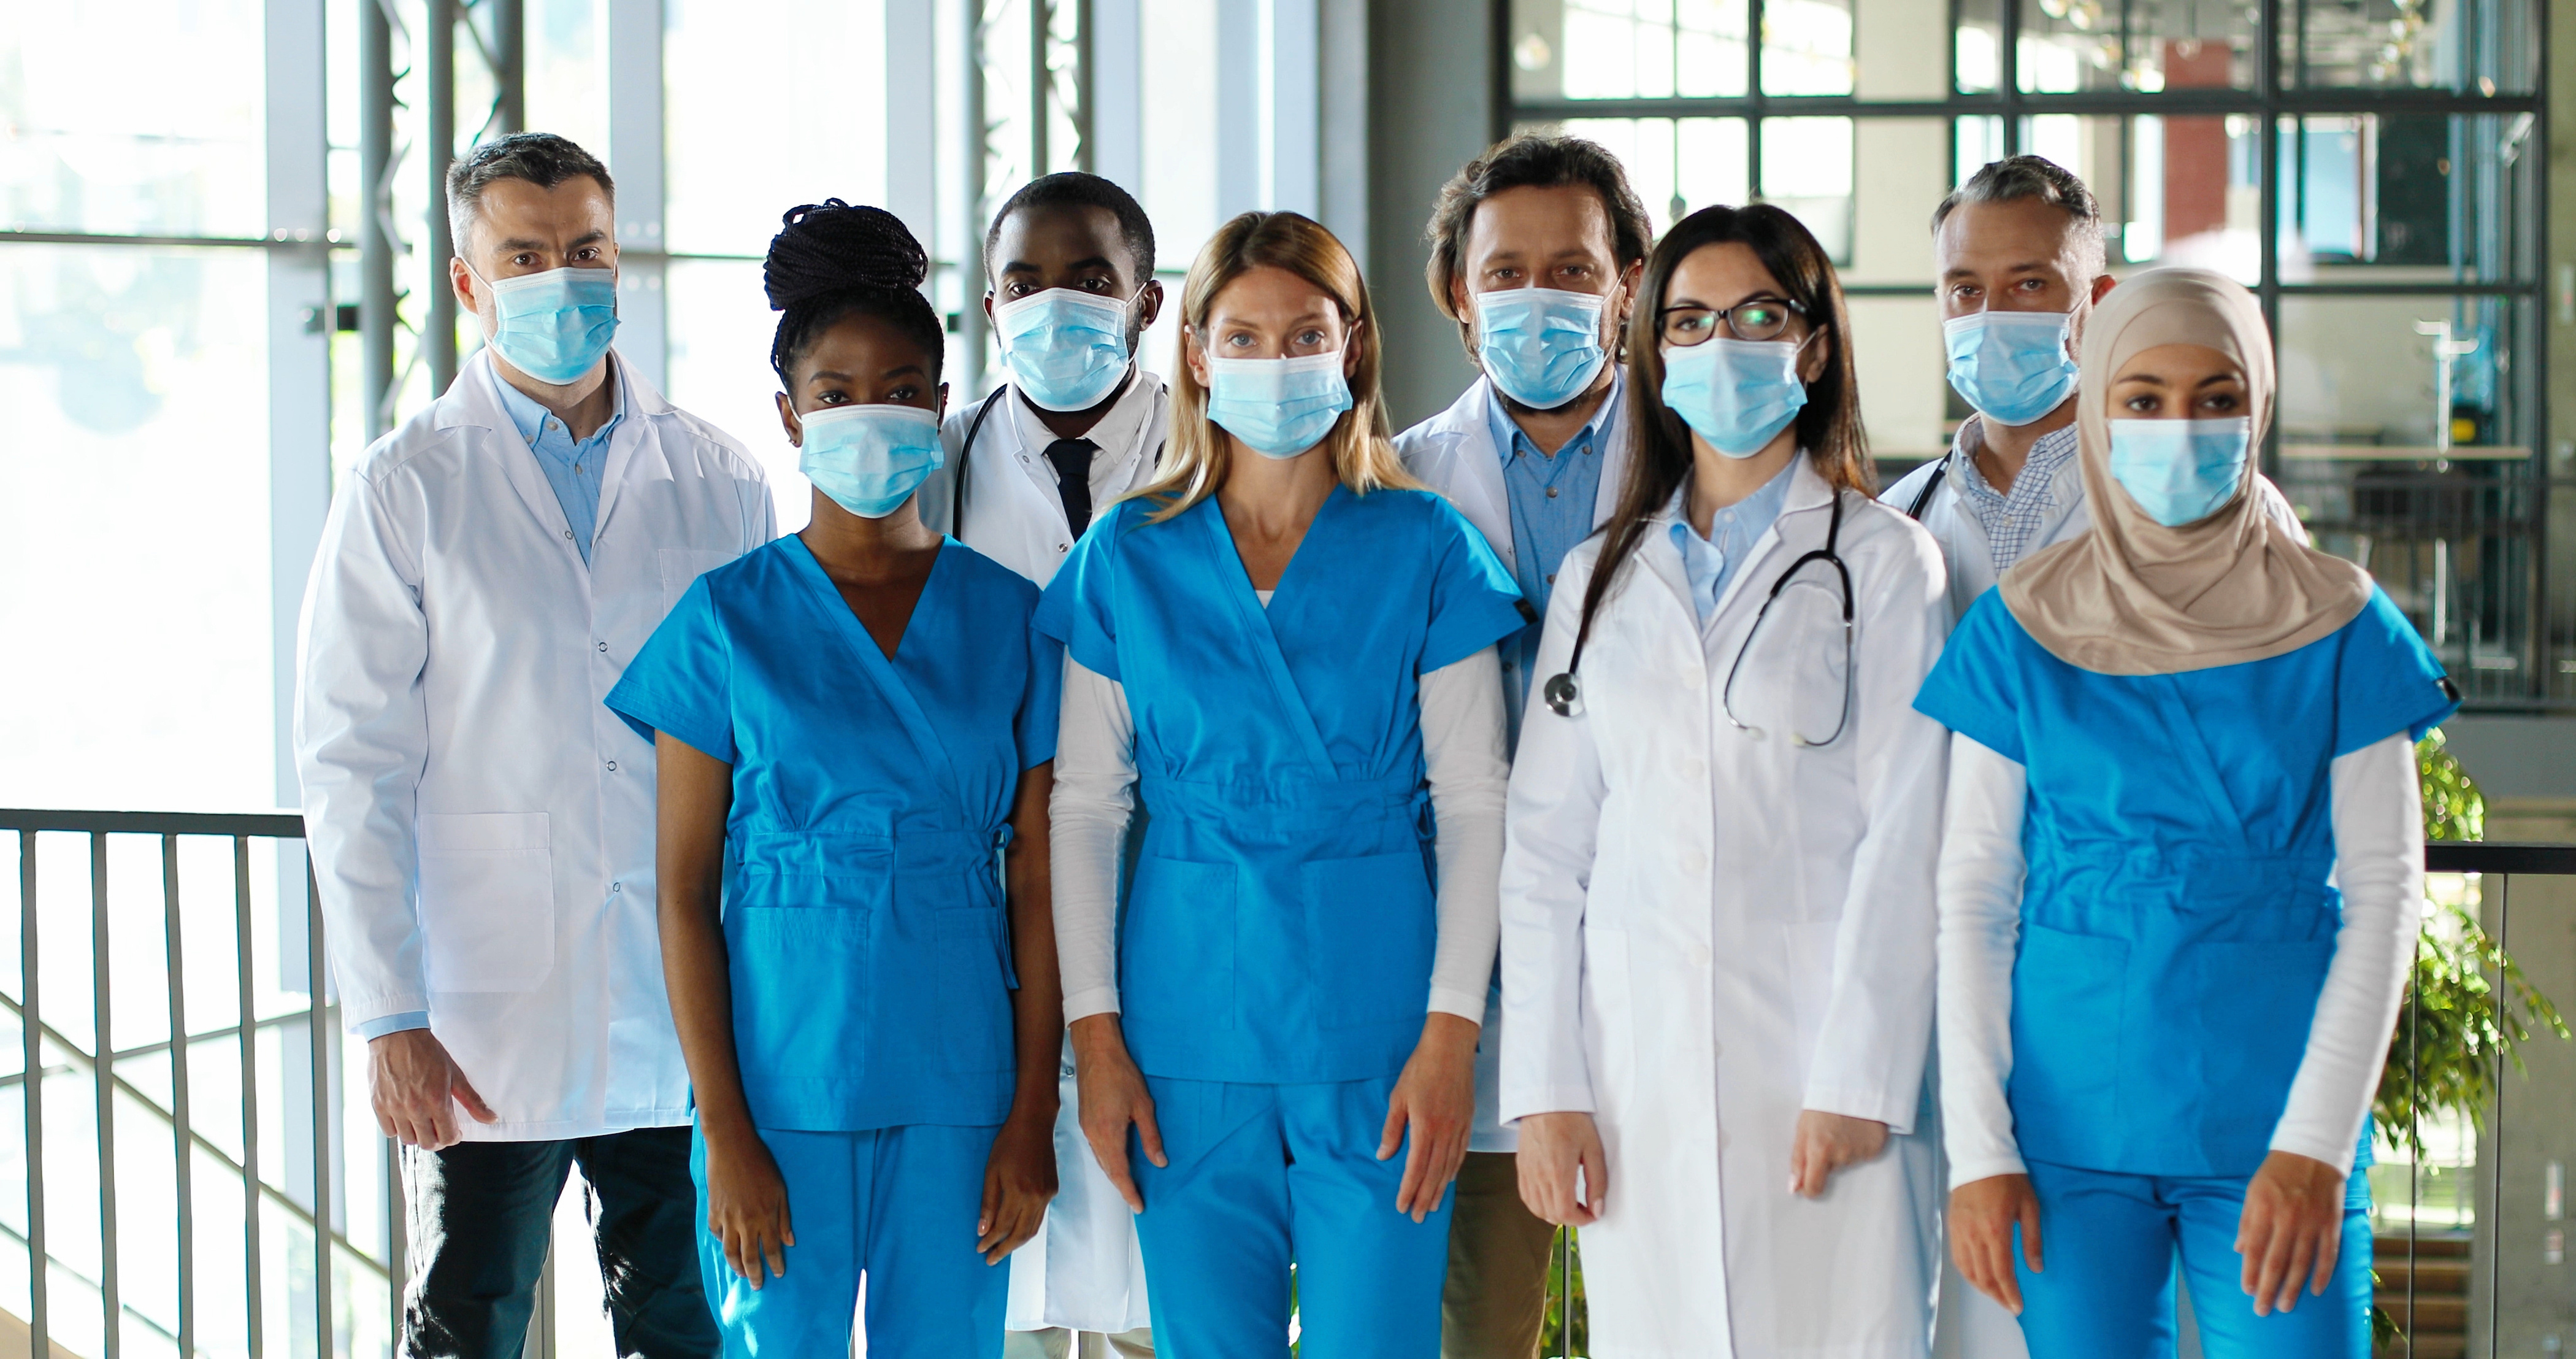 Medical School Requirements for International Students